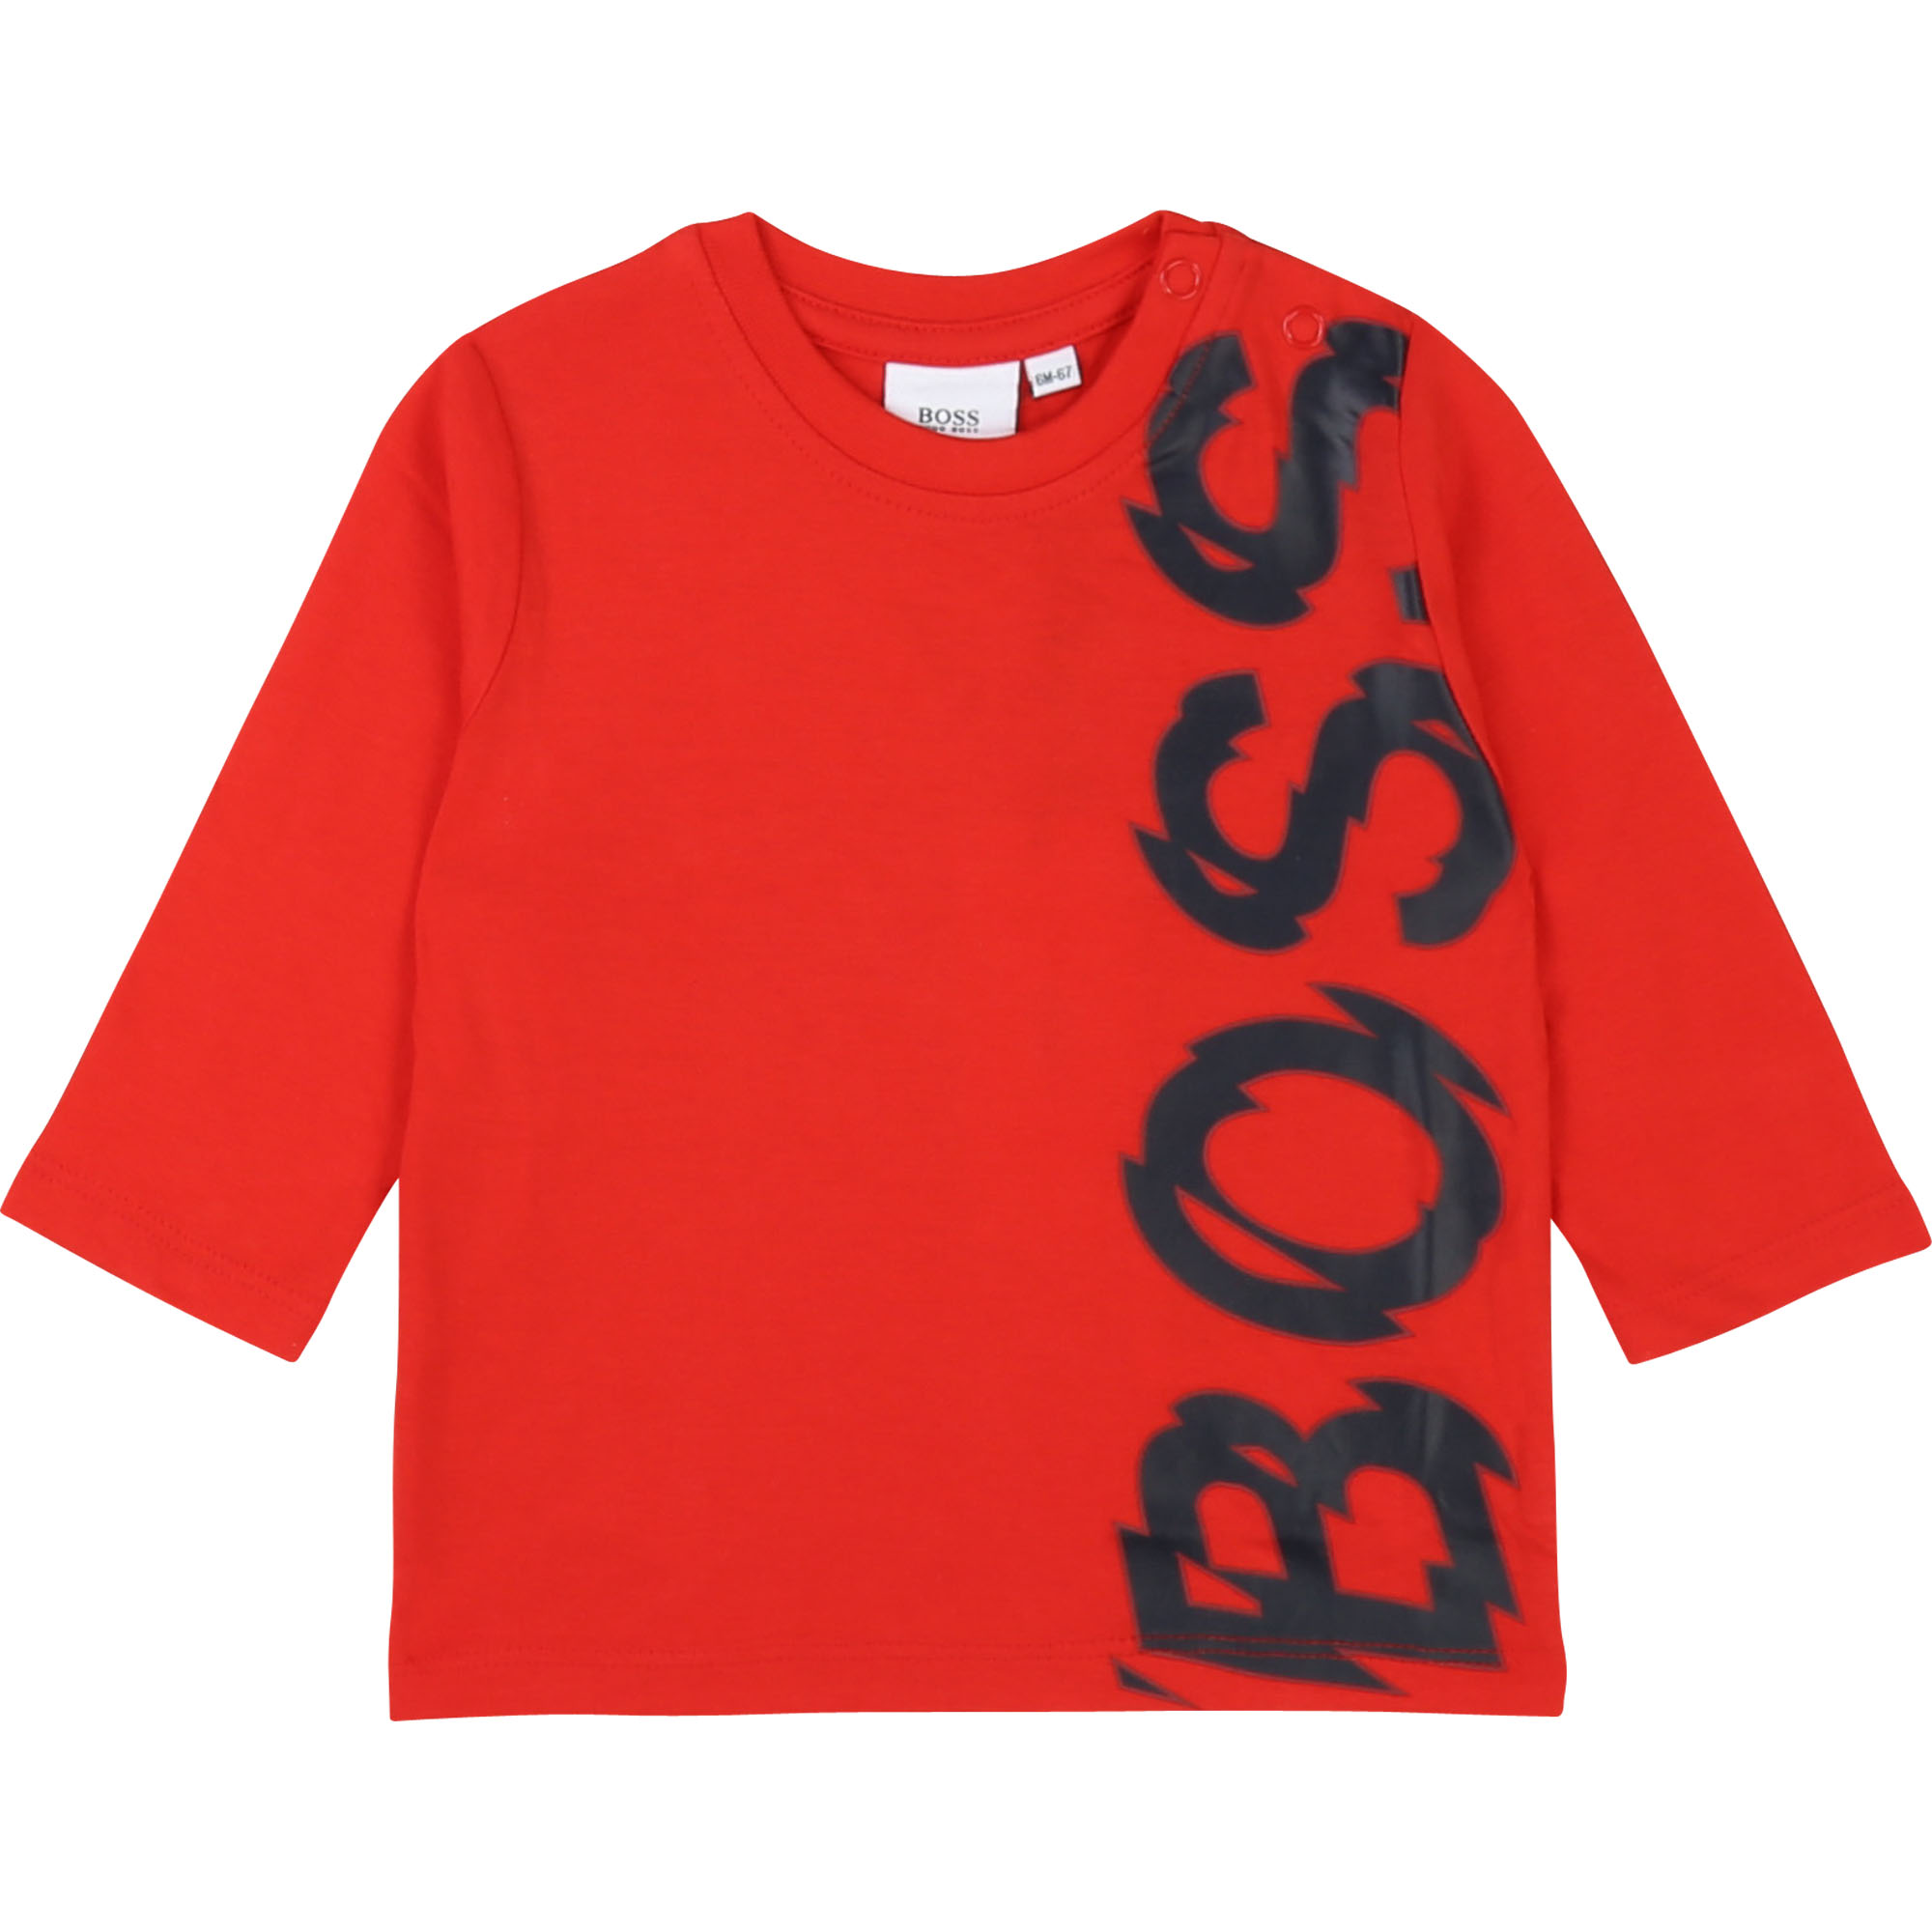 Crosshatched cotton T-shirt BOSS for BOY